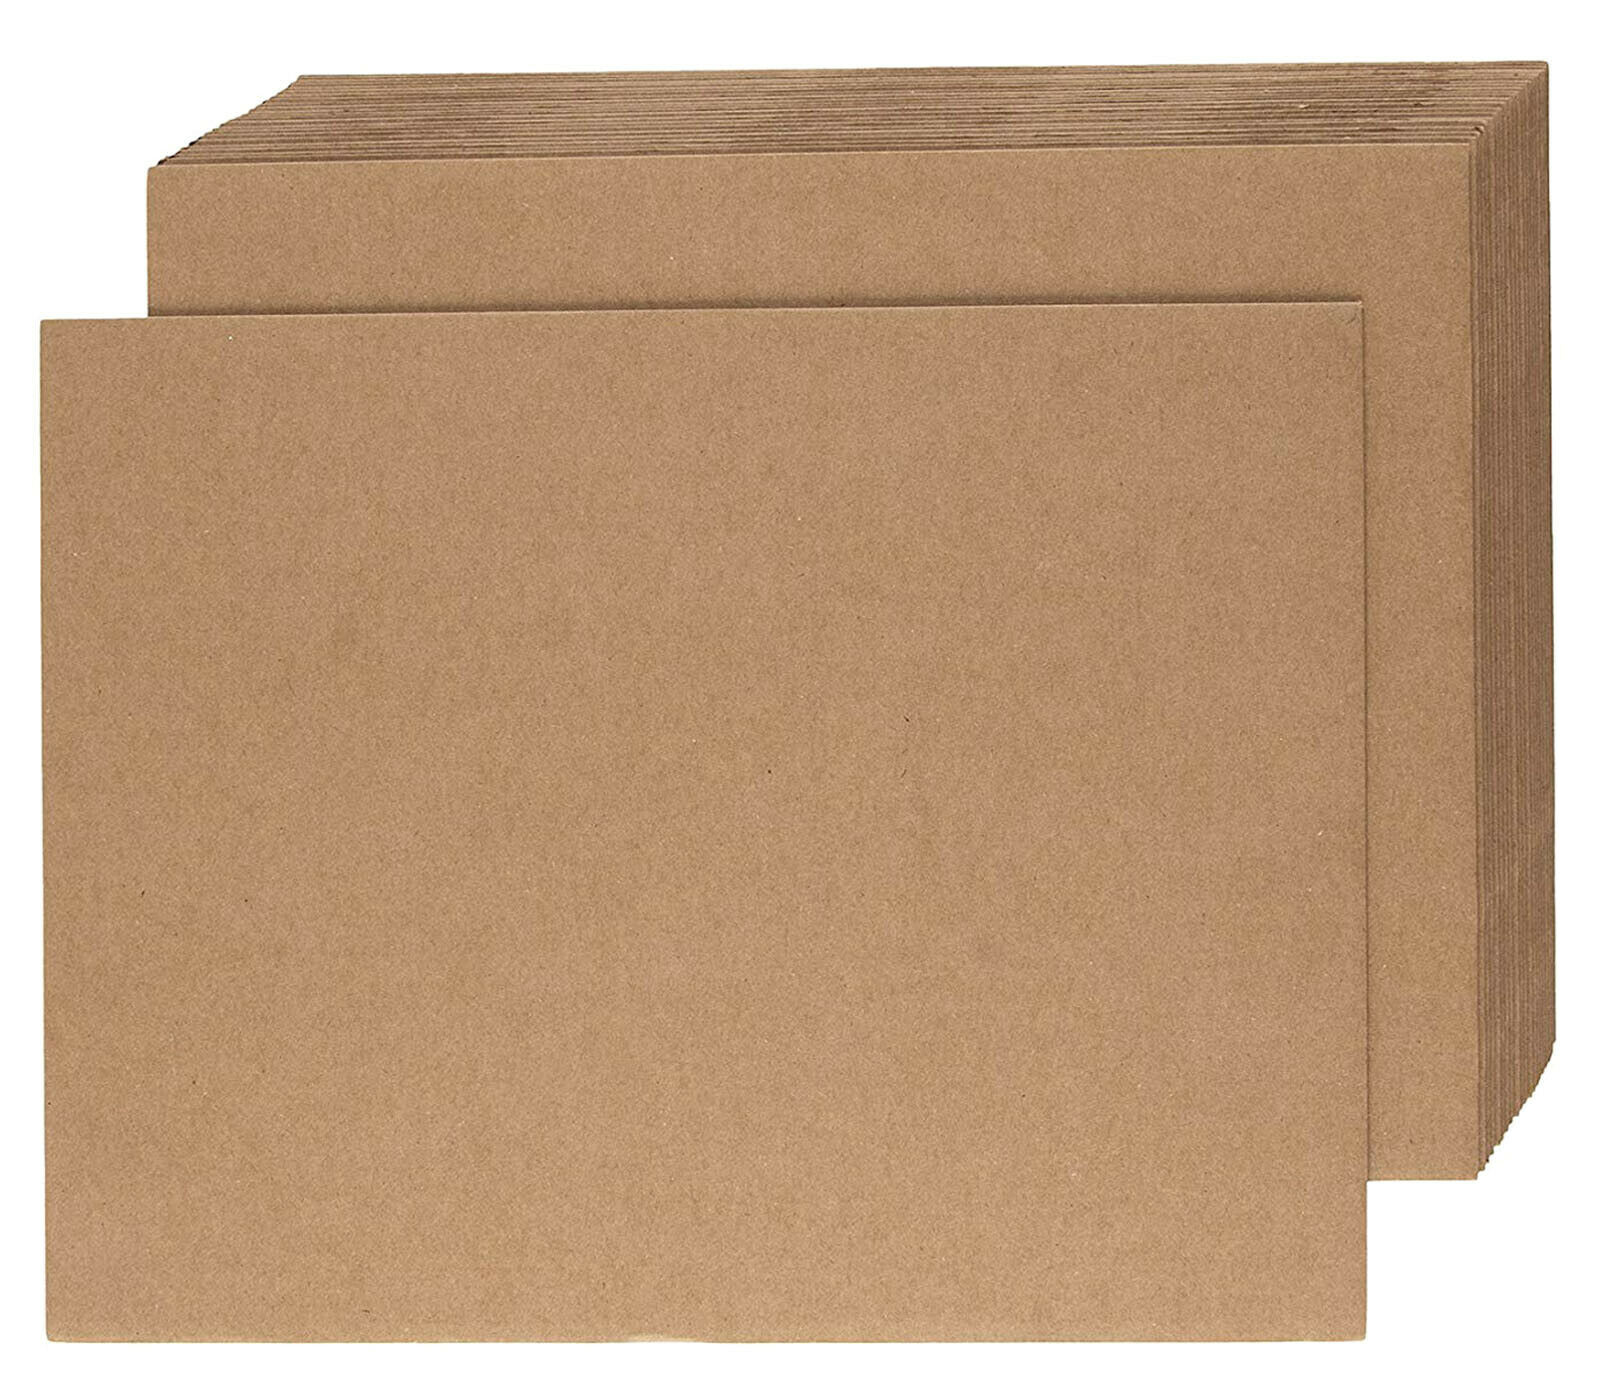 1000mm x 1200mm Cardboard Corrugated Sheets Board Pallet Layer Pads Qty 25